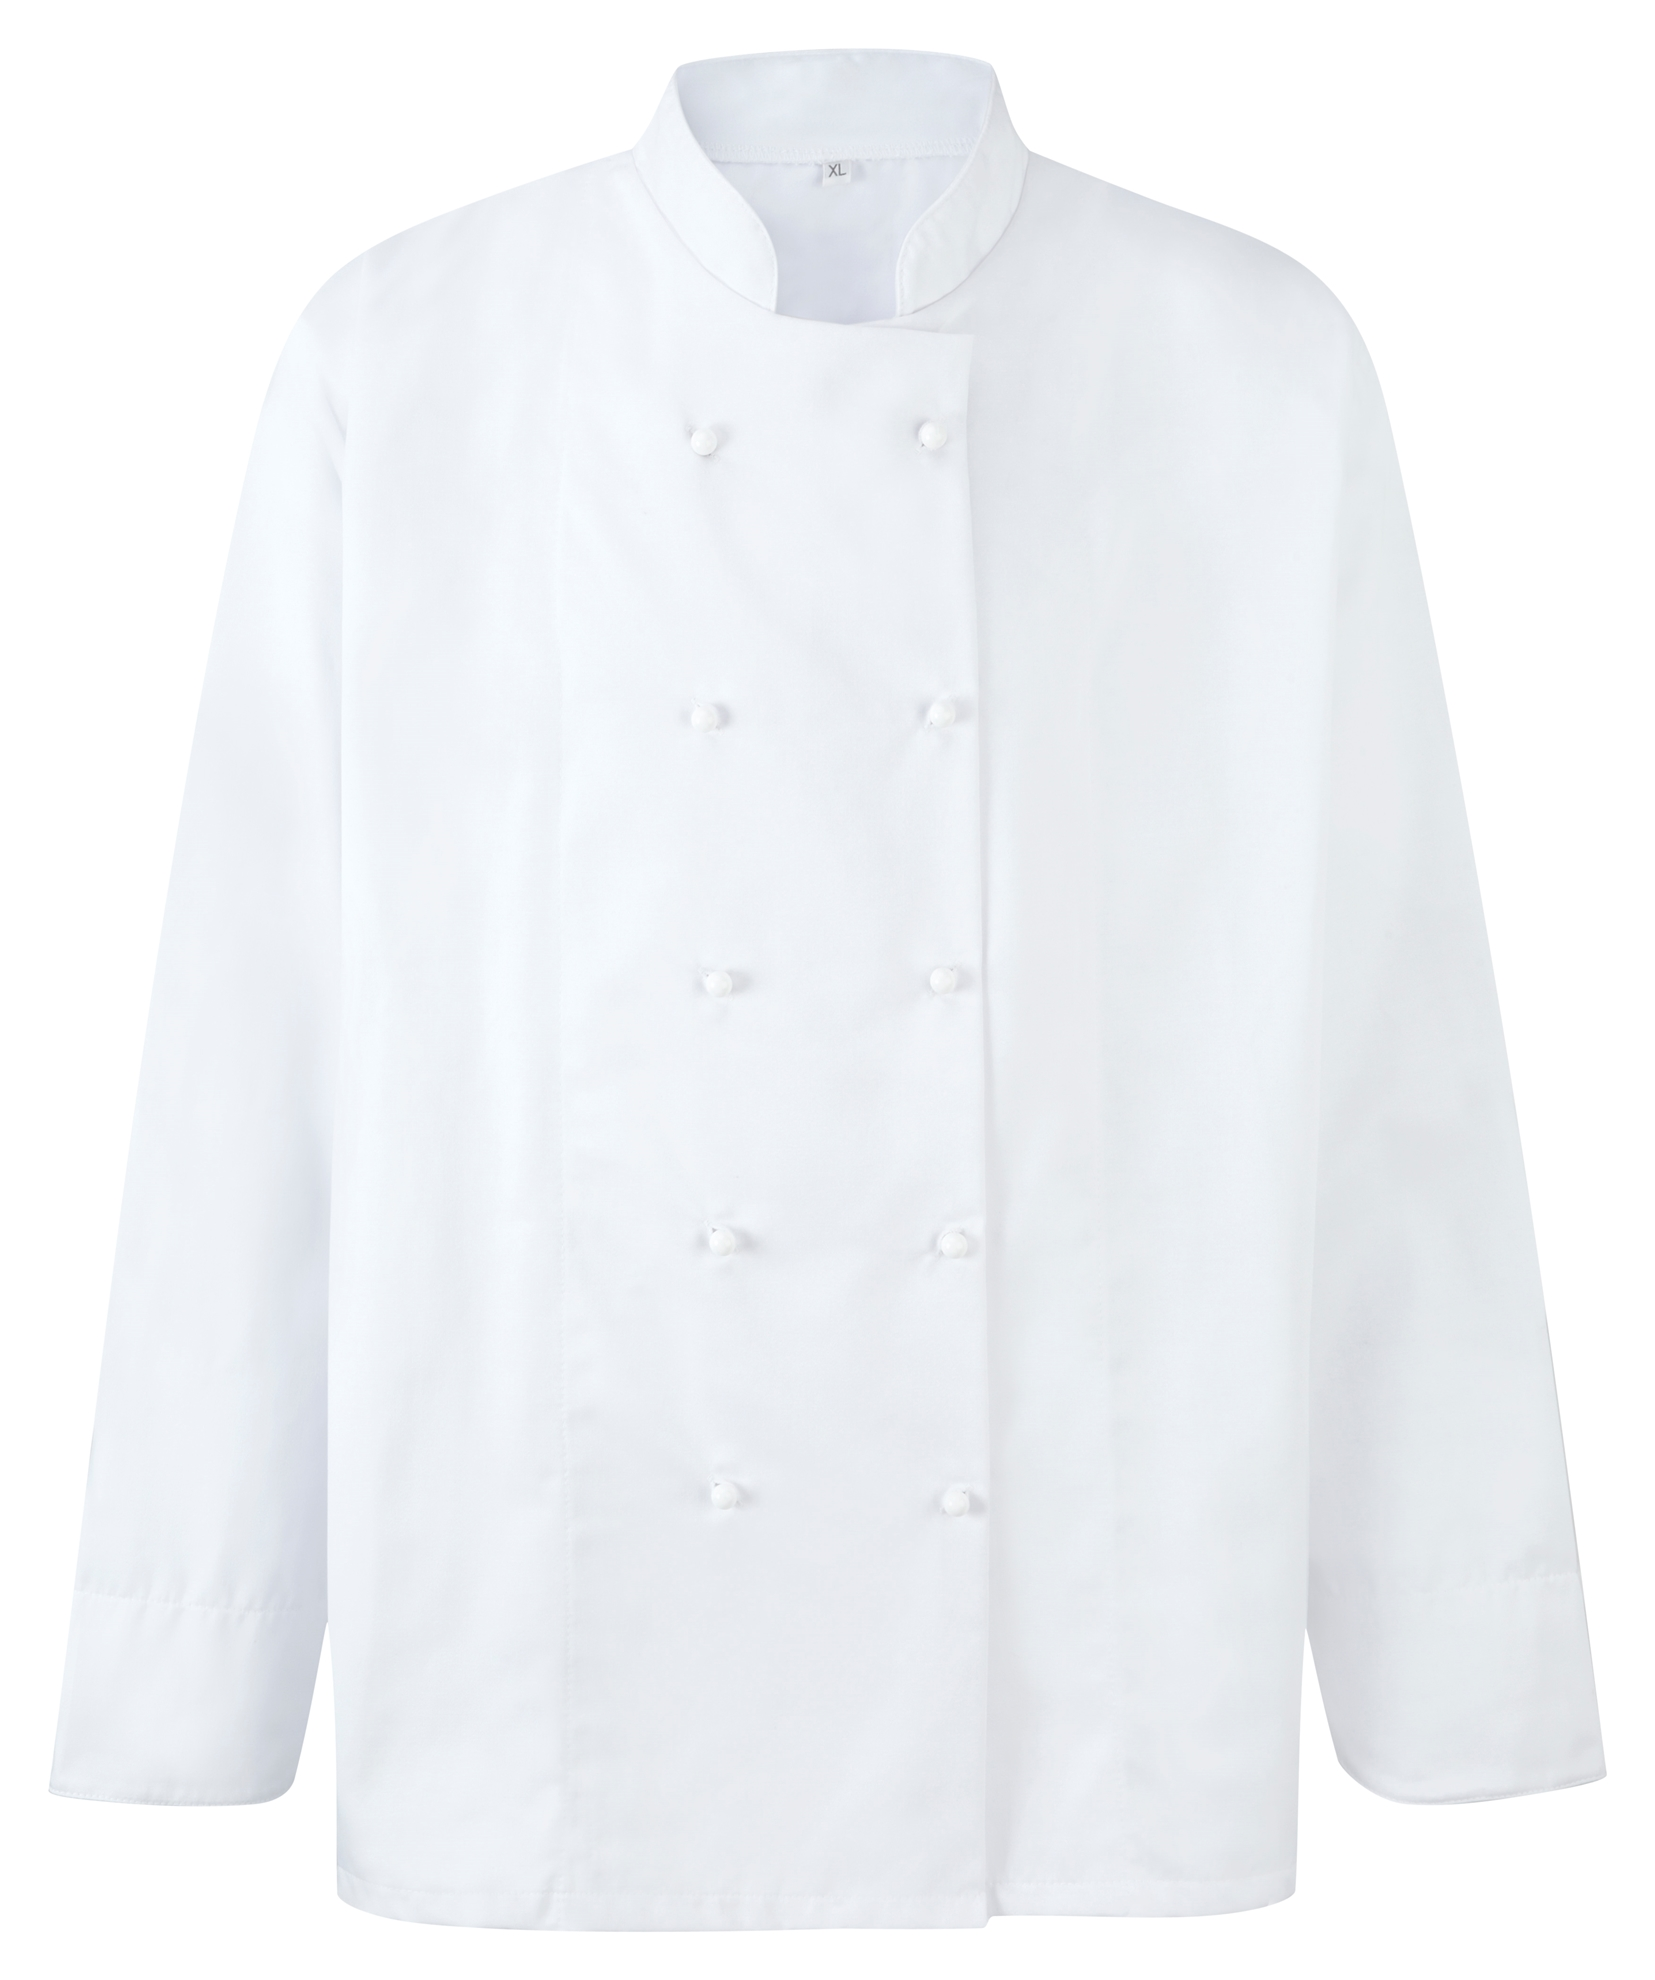 Picture of Unisex Chefs Jacket L/S for Stud Fastening - White